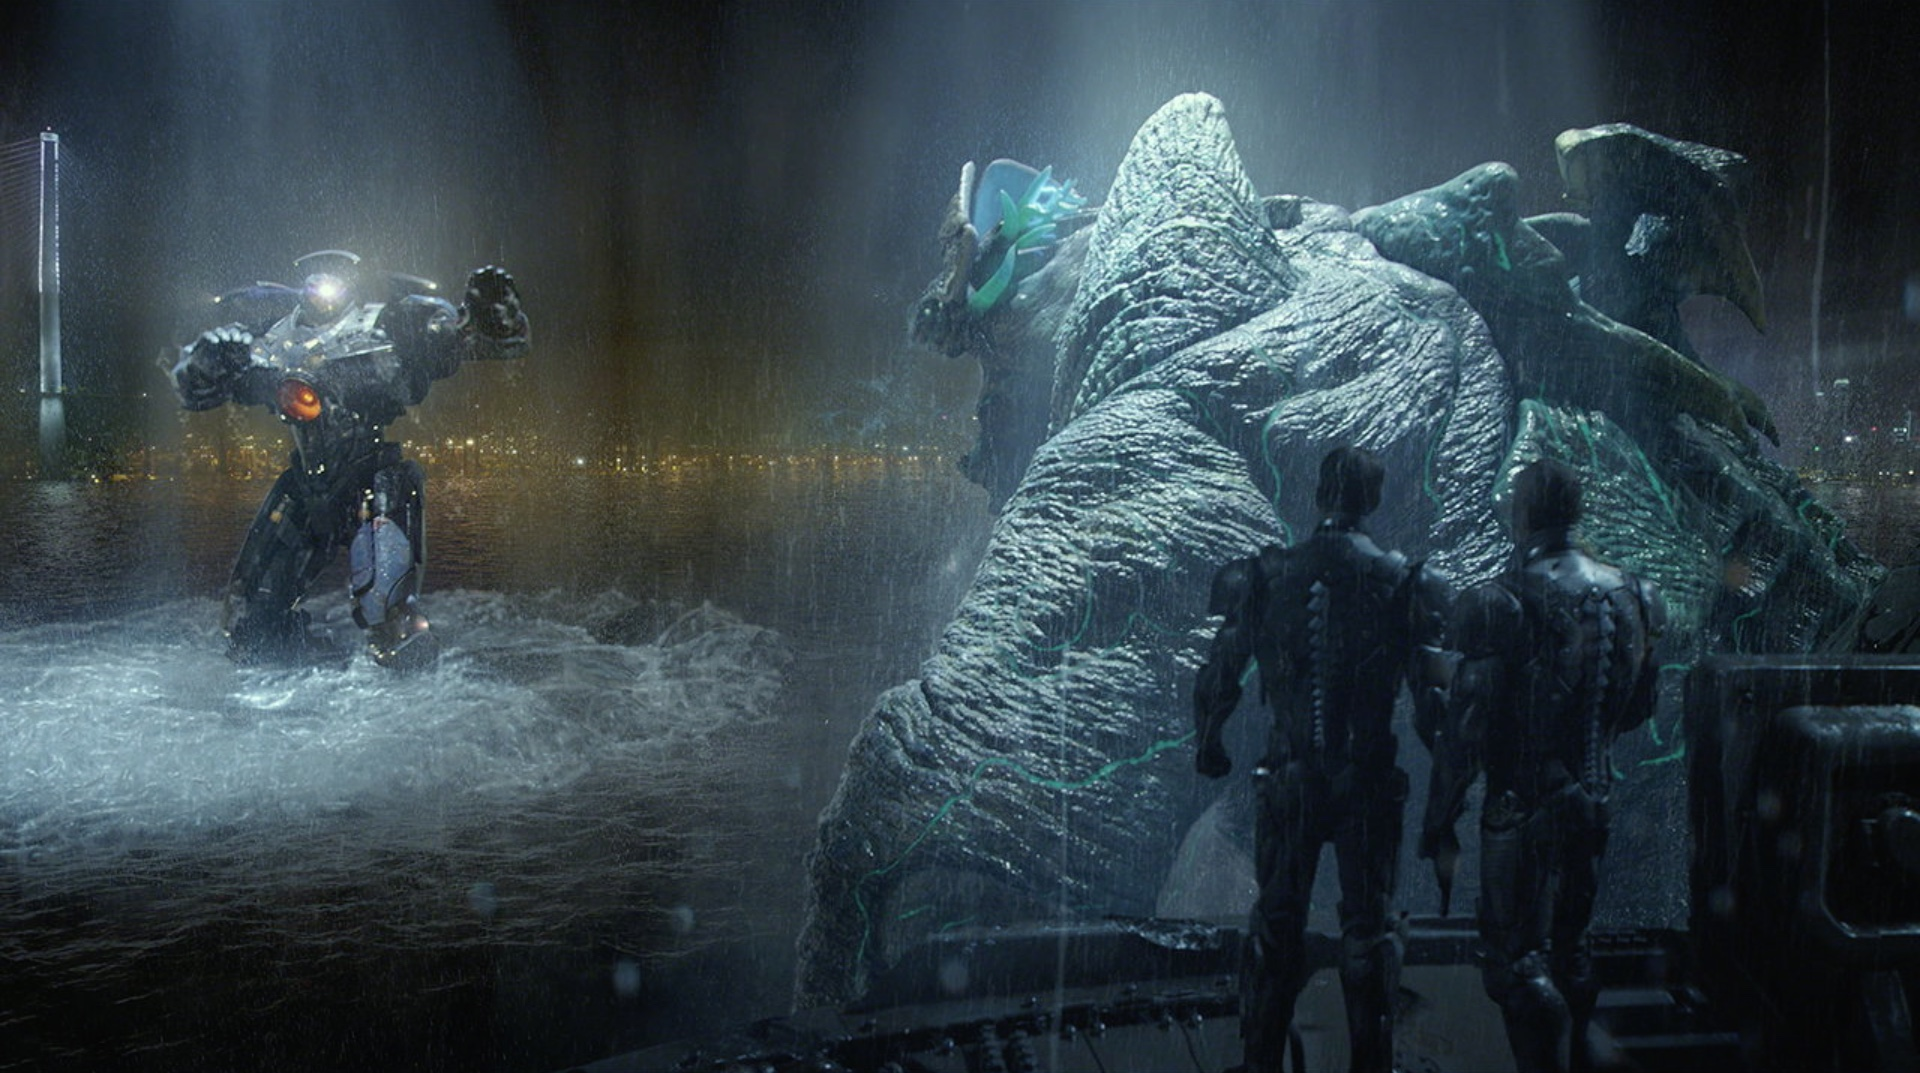 © 2013 Warner Bros. Entertainment Inc. and Legendary Pictures Funding, LLC    This shot is one of the featured images on the Arnold Renderer website:   https://www.solidangle.com/news/pacific-rim/